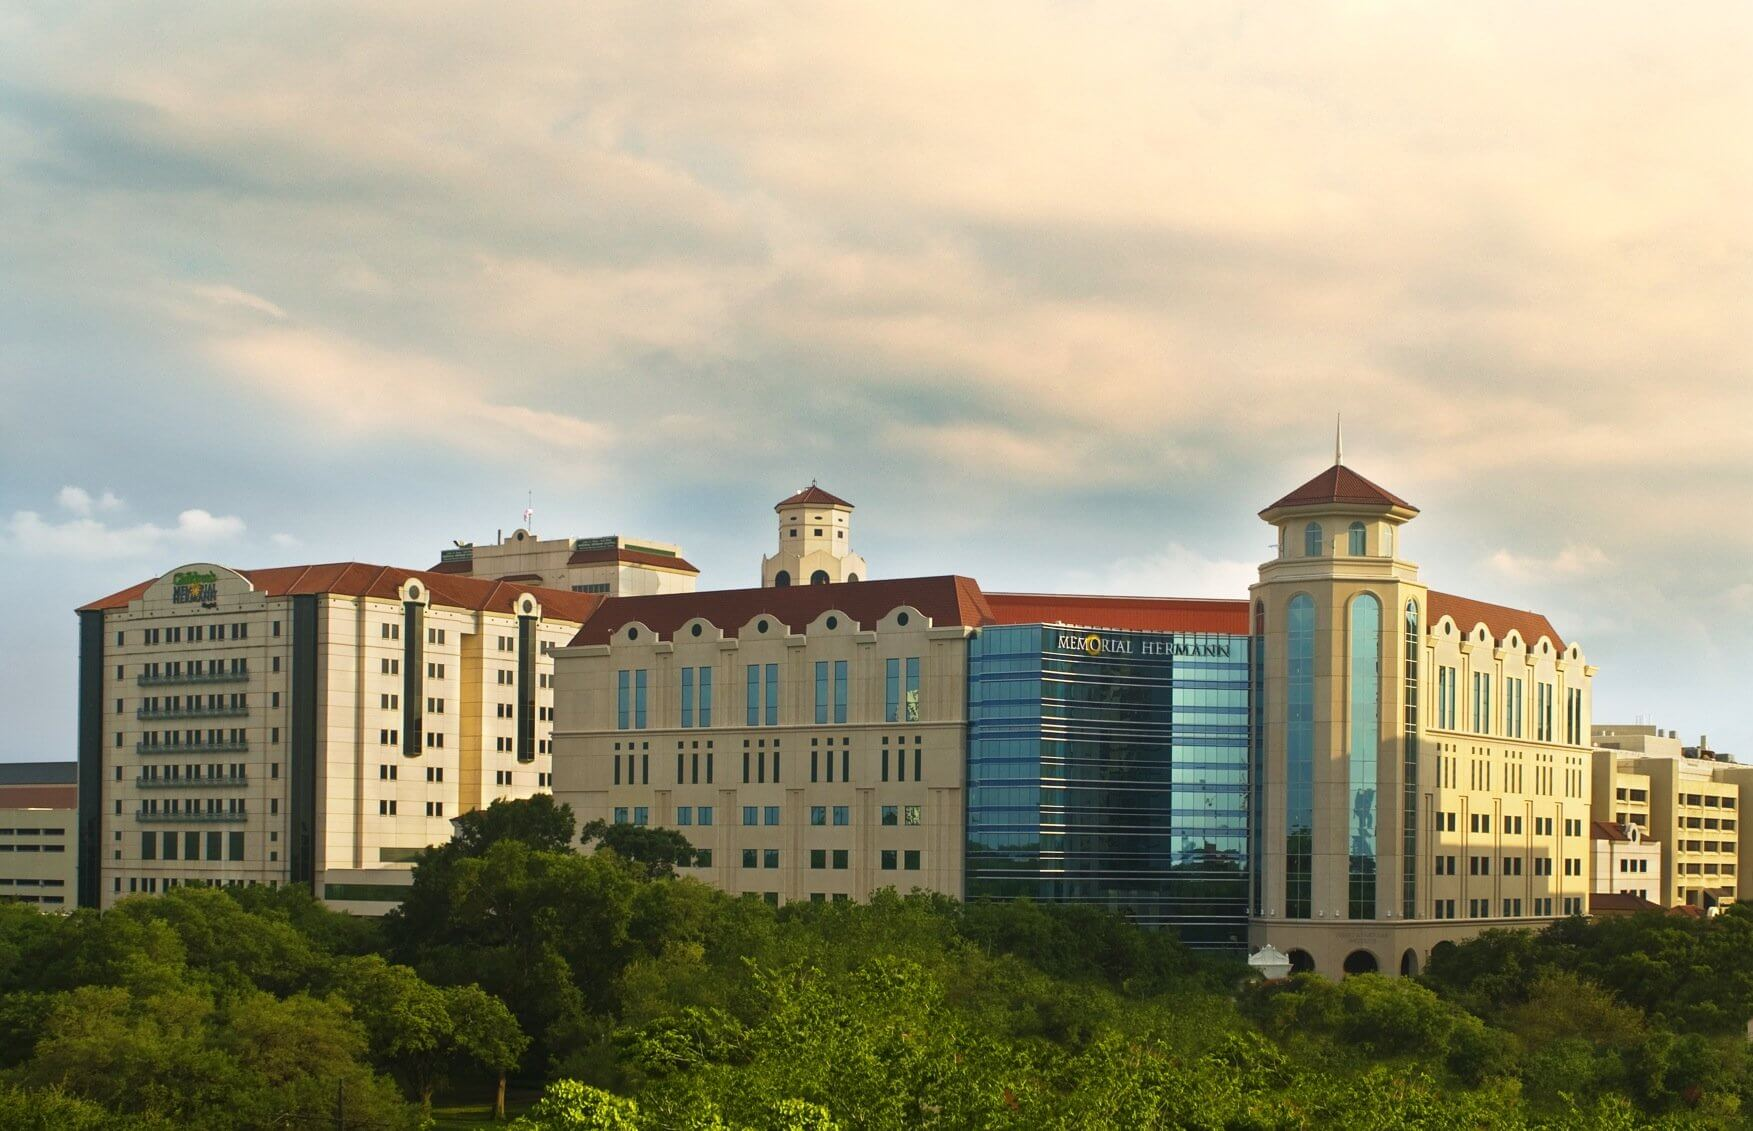 Memorial Hermann-Texas Medical Center ranked No. 4 among Houston hospitals and TIRR Memorial Hermann ranked No. 4 nationally for rehabilitation in U.S. News & World Report's 2019-2020